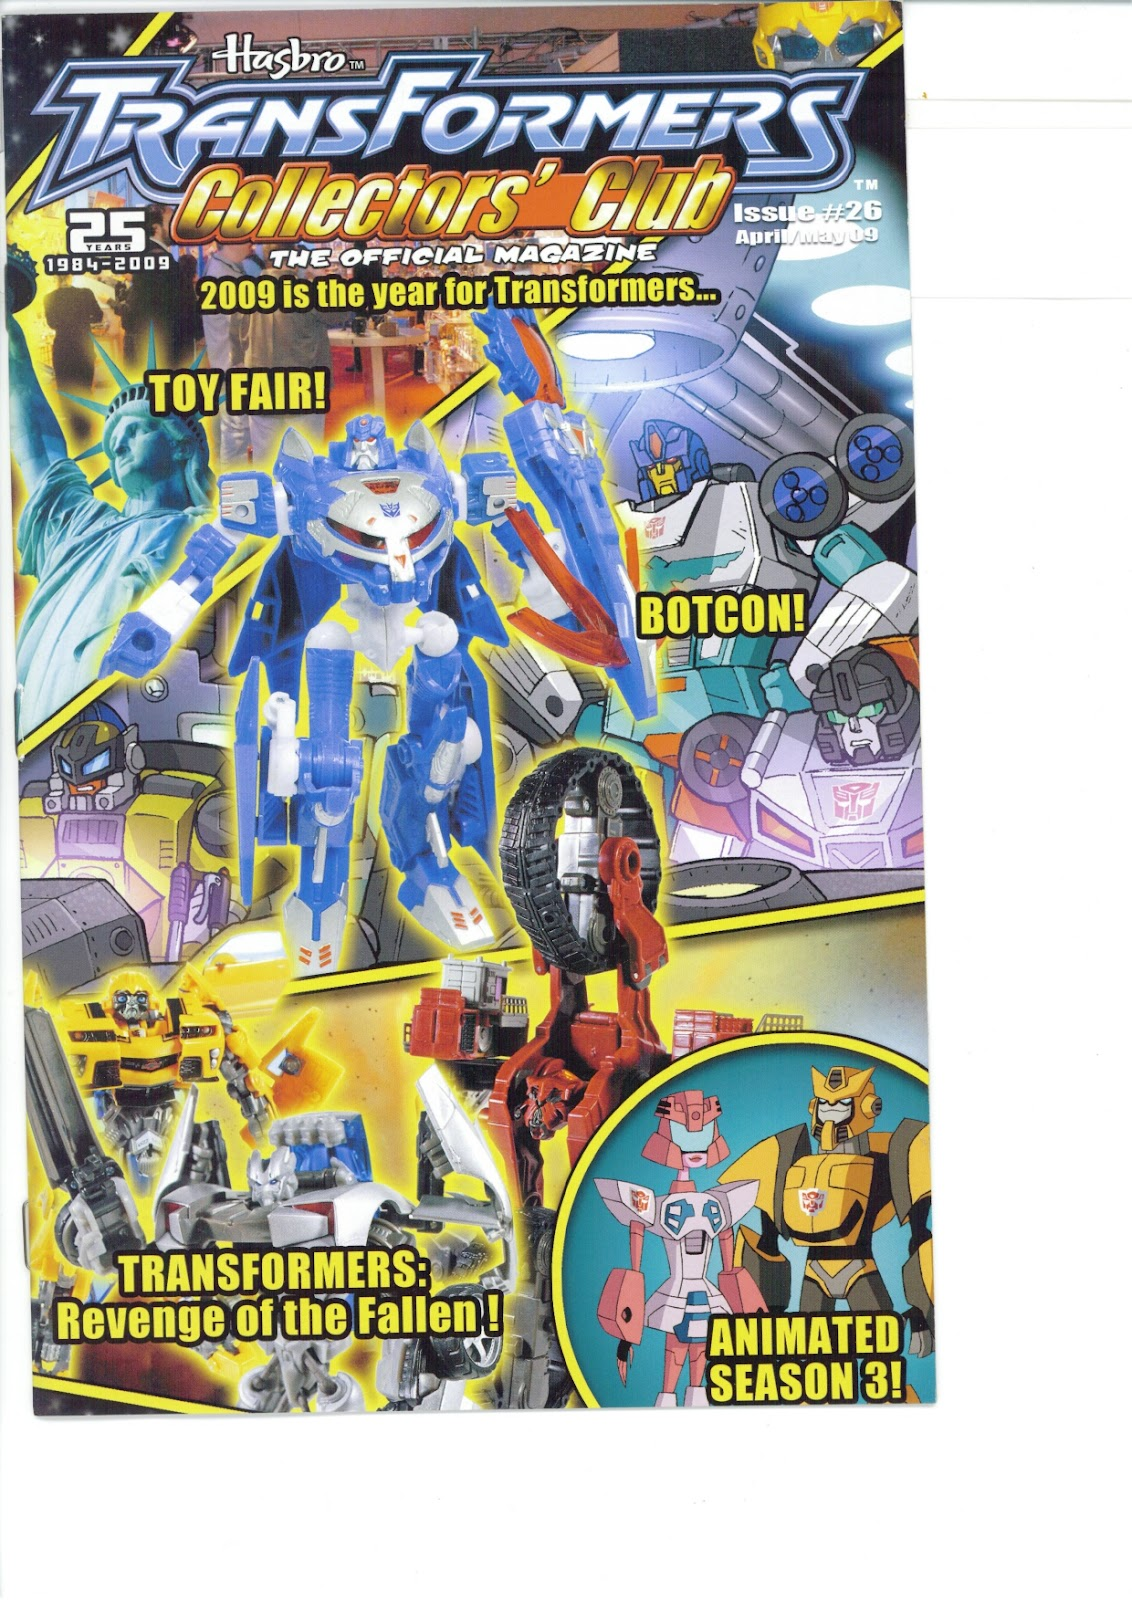 Read online Transformers: Collectors' Club comic -  Issue #26 - 1